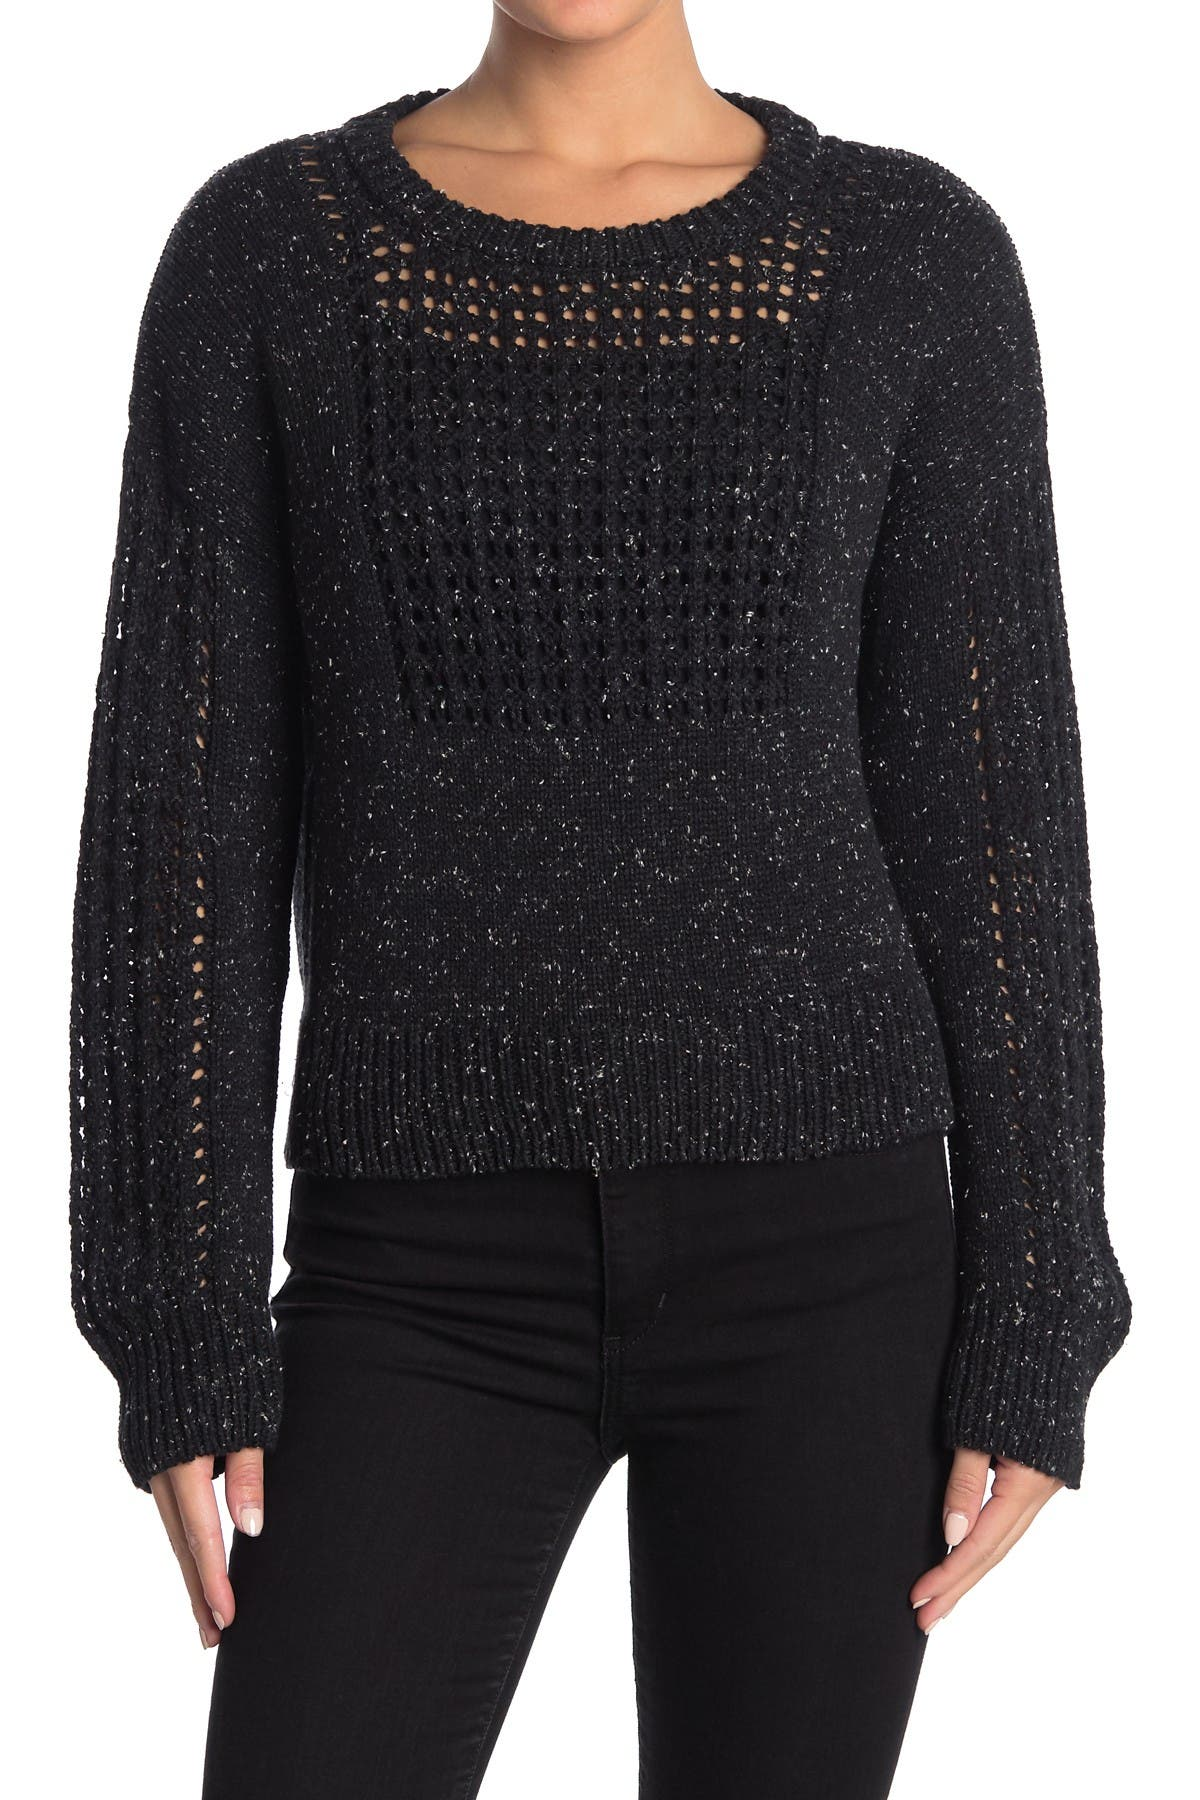 Image of Billy Reid Boxy Net Sweater